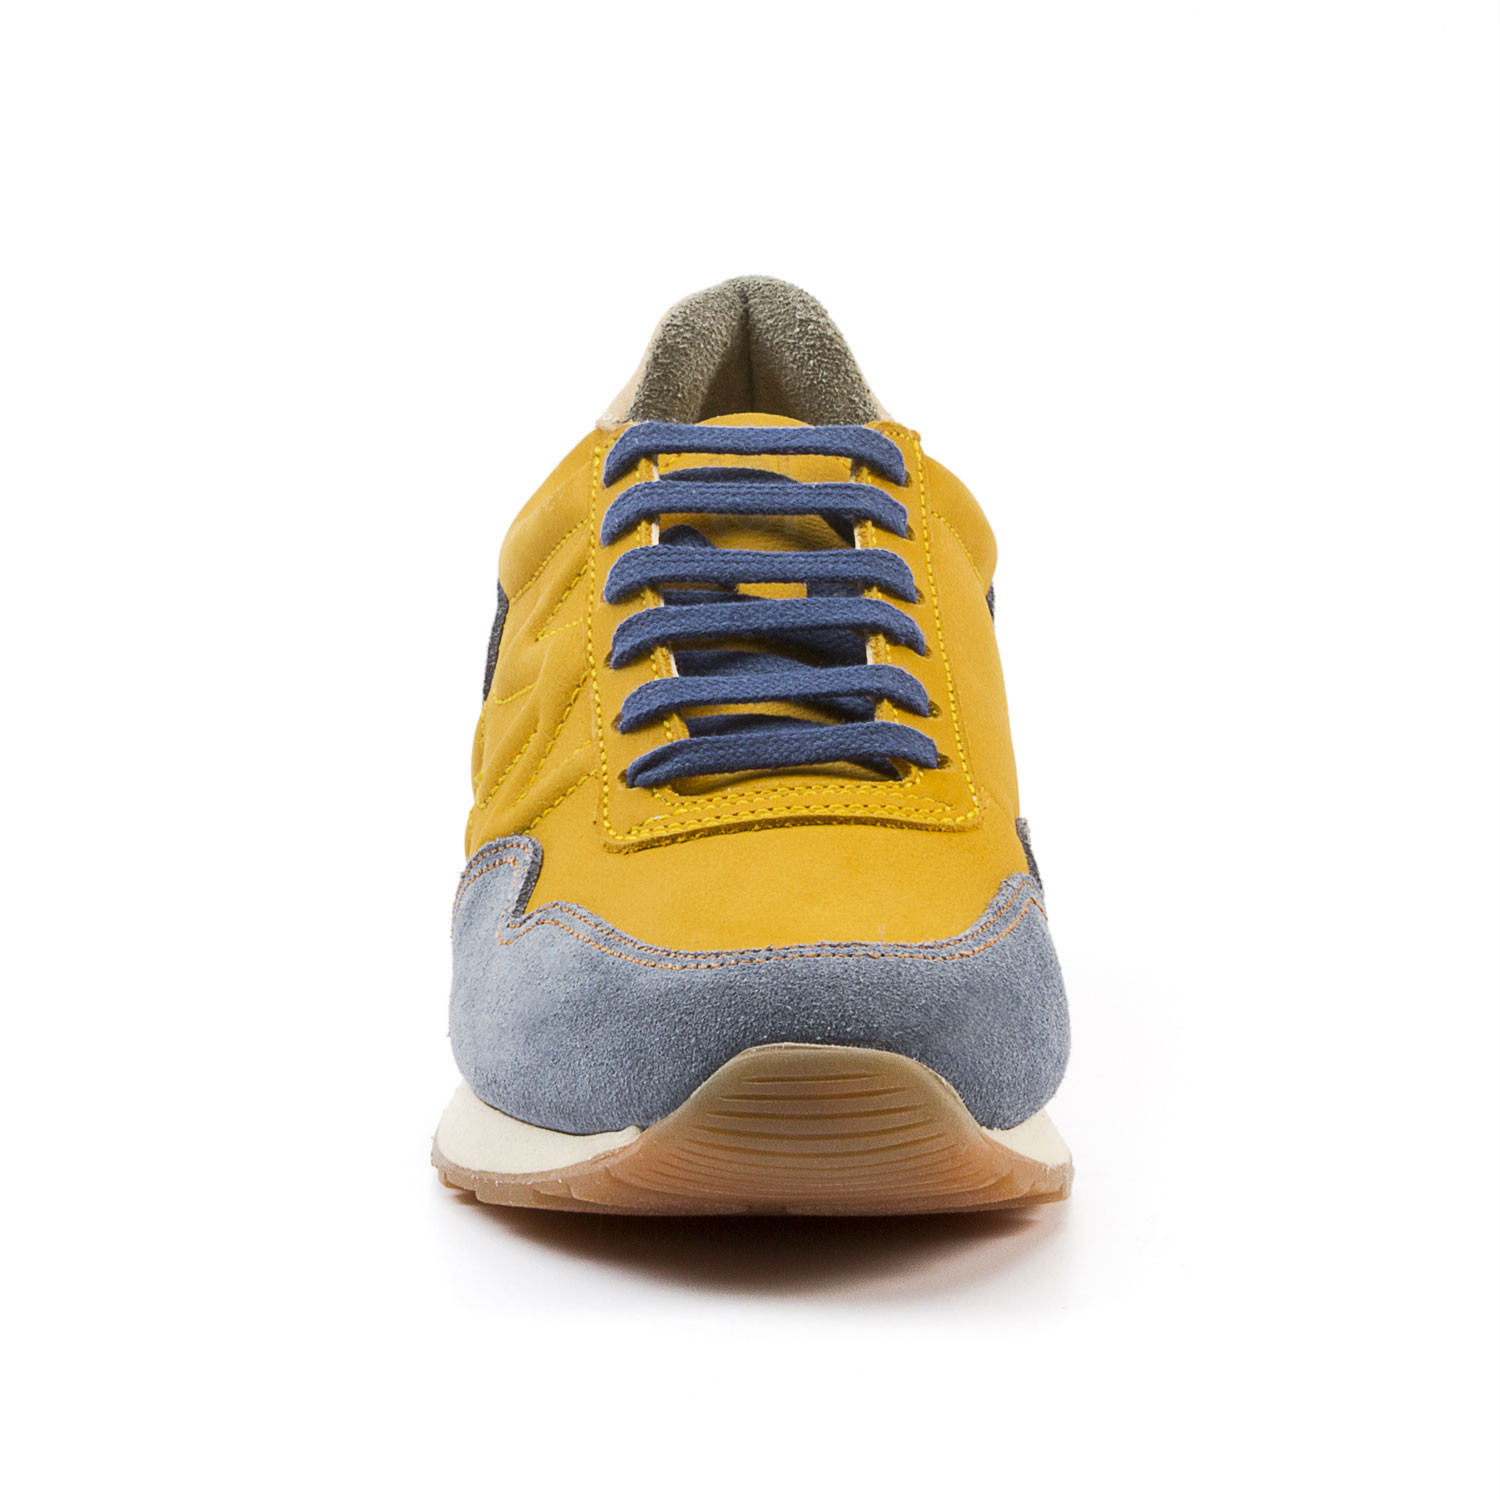 "Sneaker ""Walky"", mais"